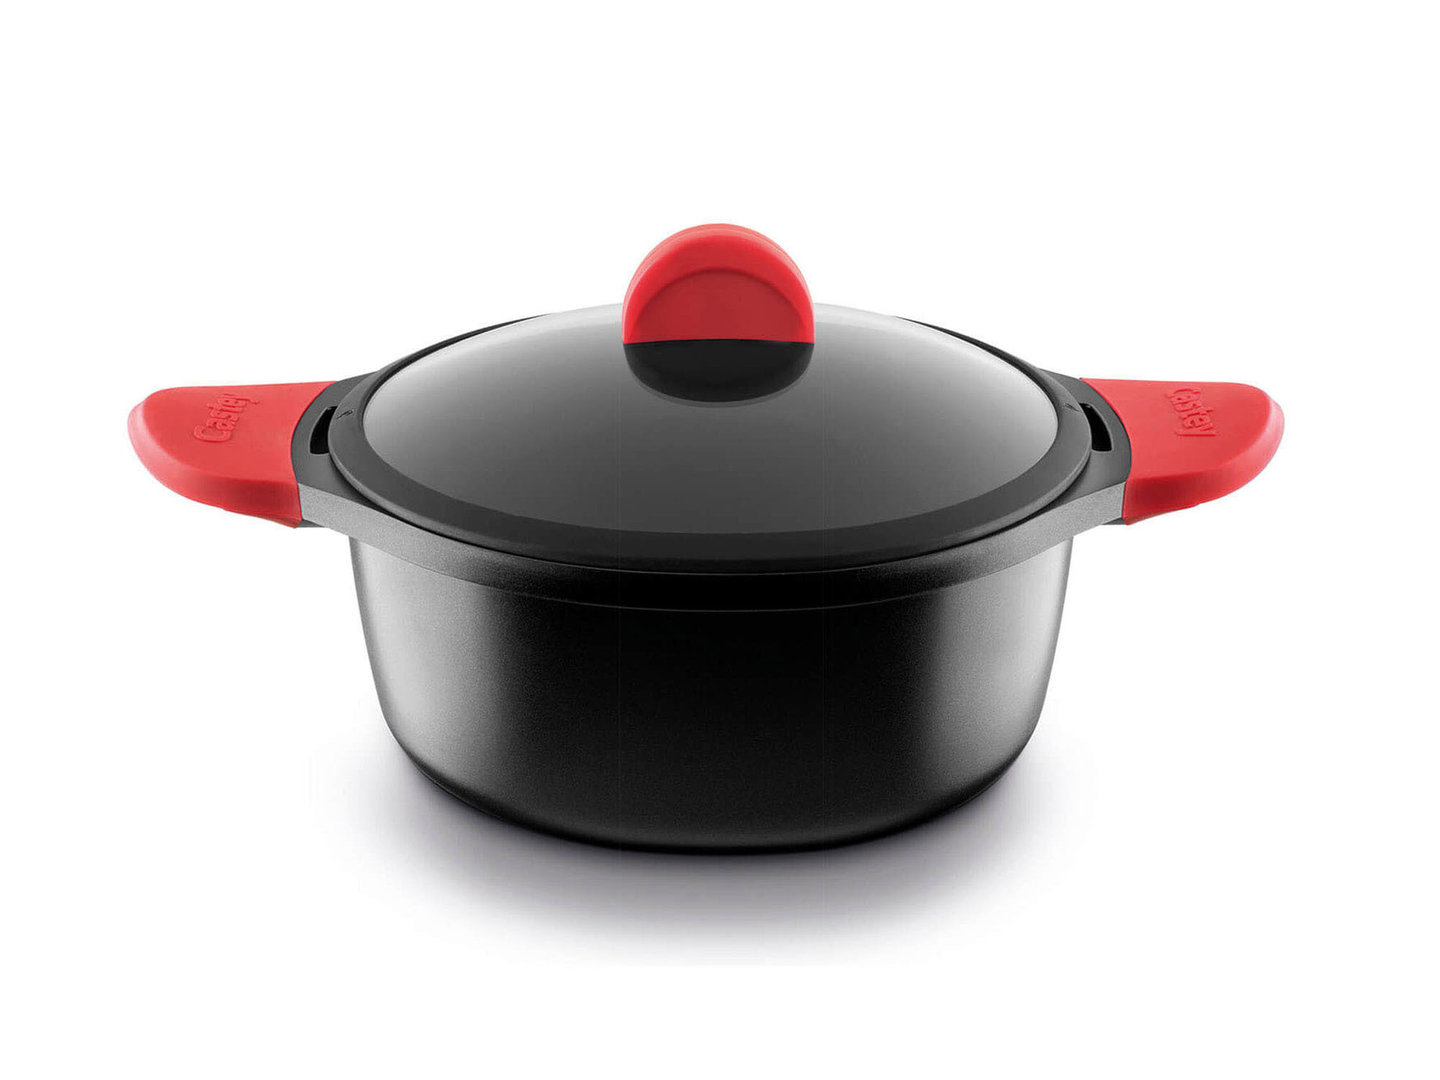 CASTEY cast aluminum casserole 20 cm with silicone handles induction